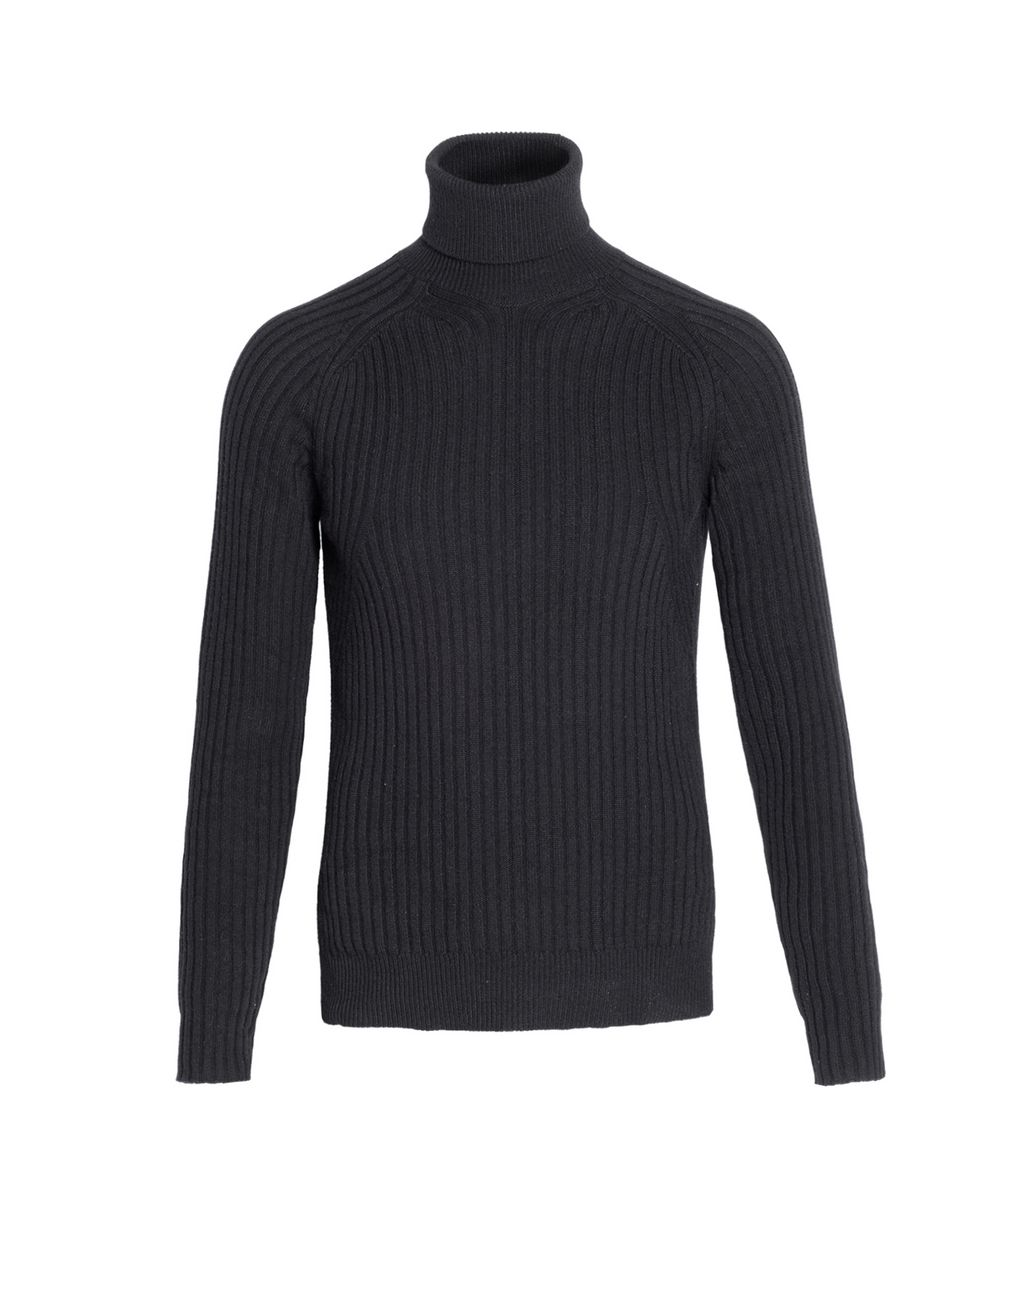 BRIONI Black Cashmere Ribbed Turtleneck Sweater Knitwear Man f